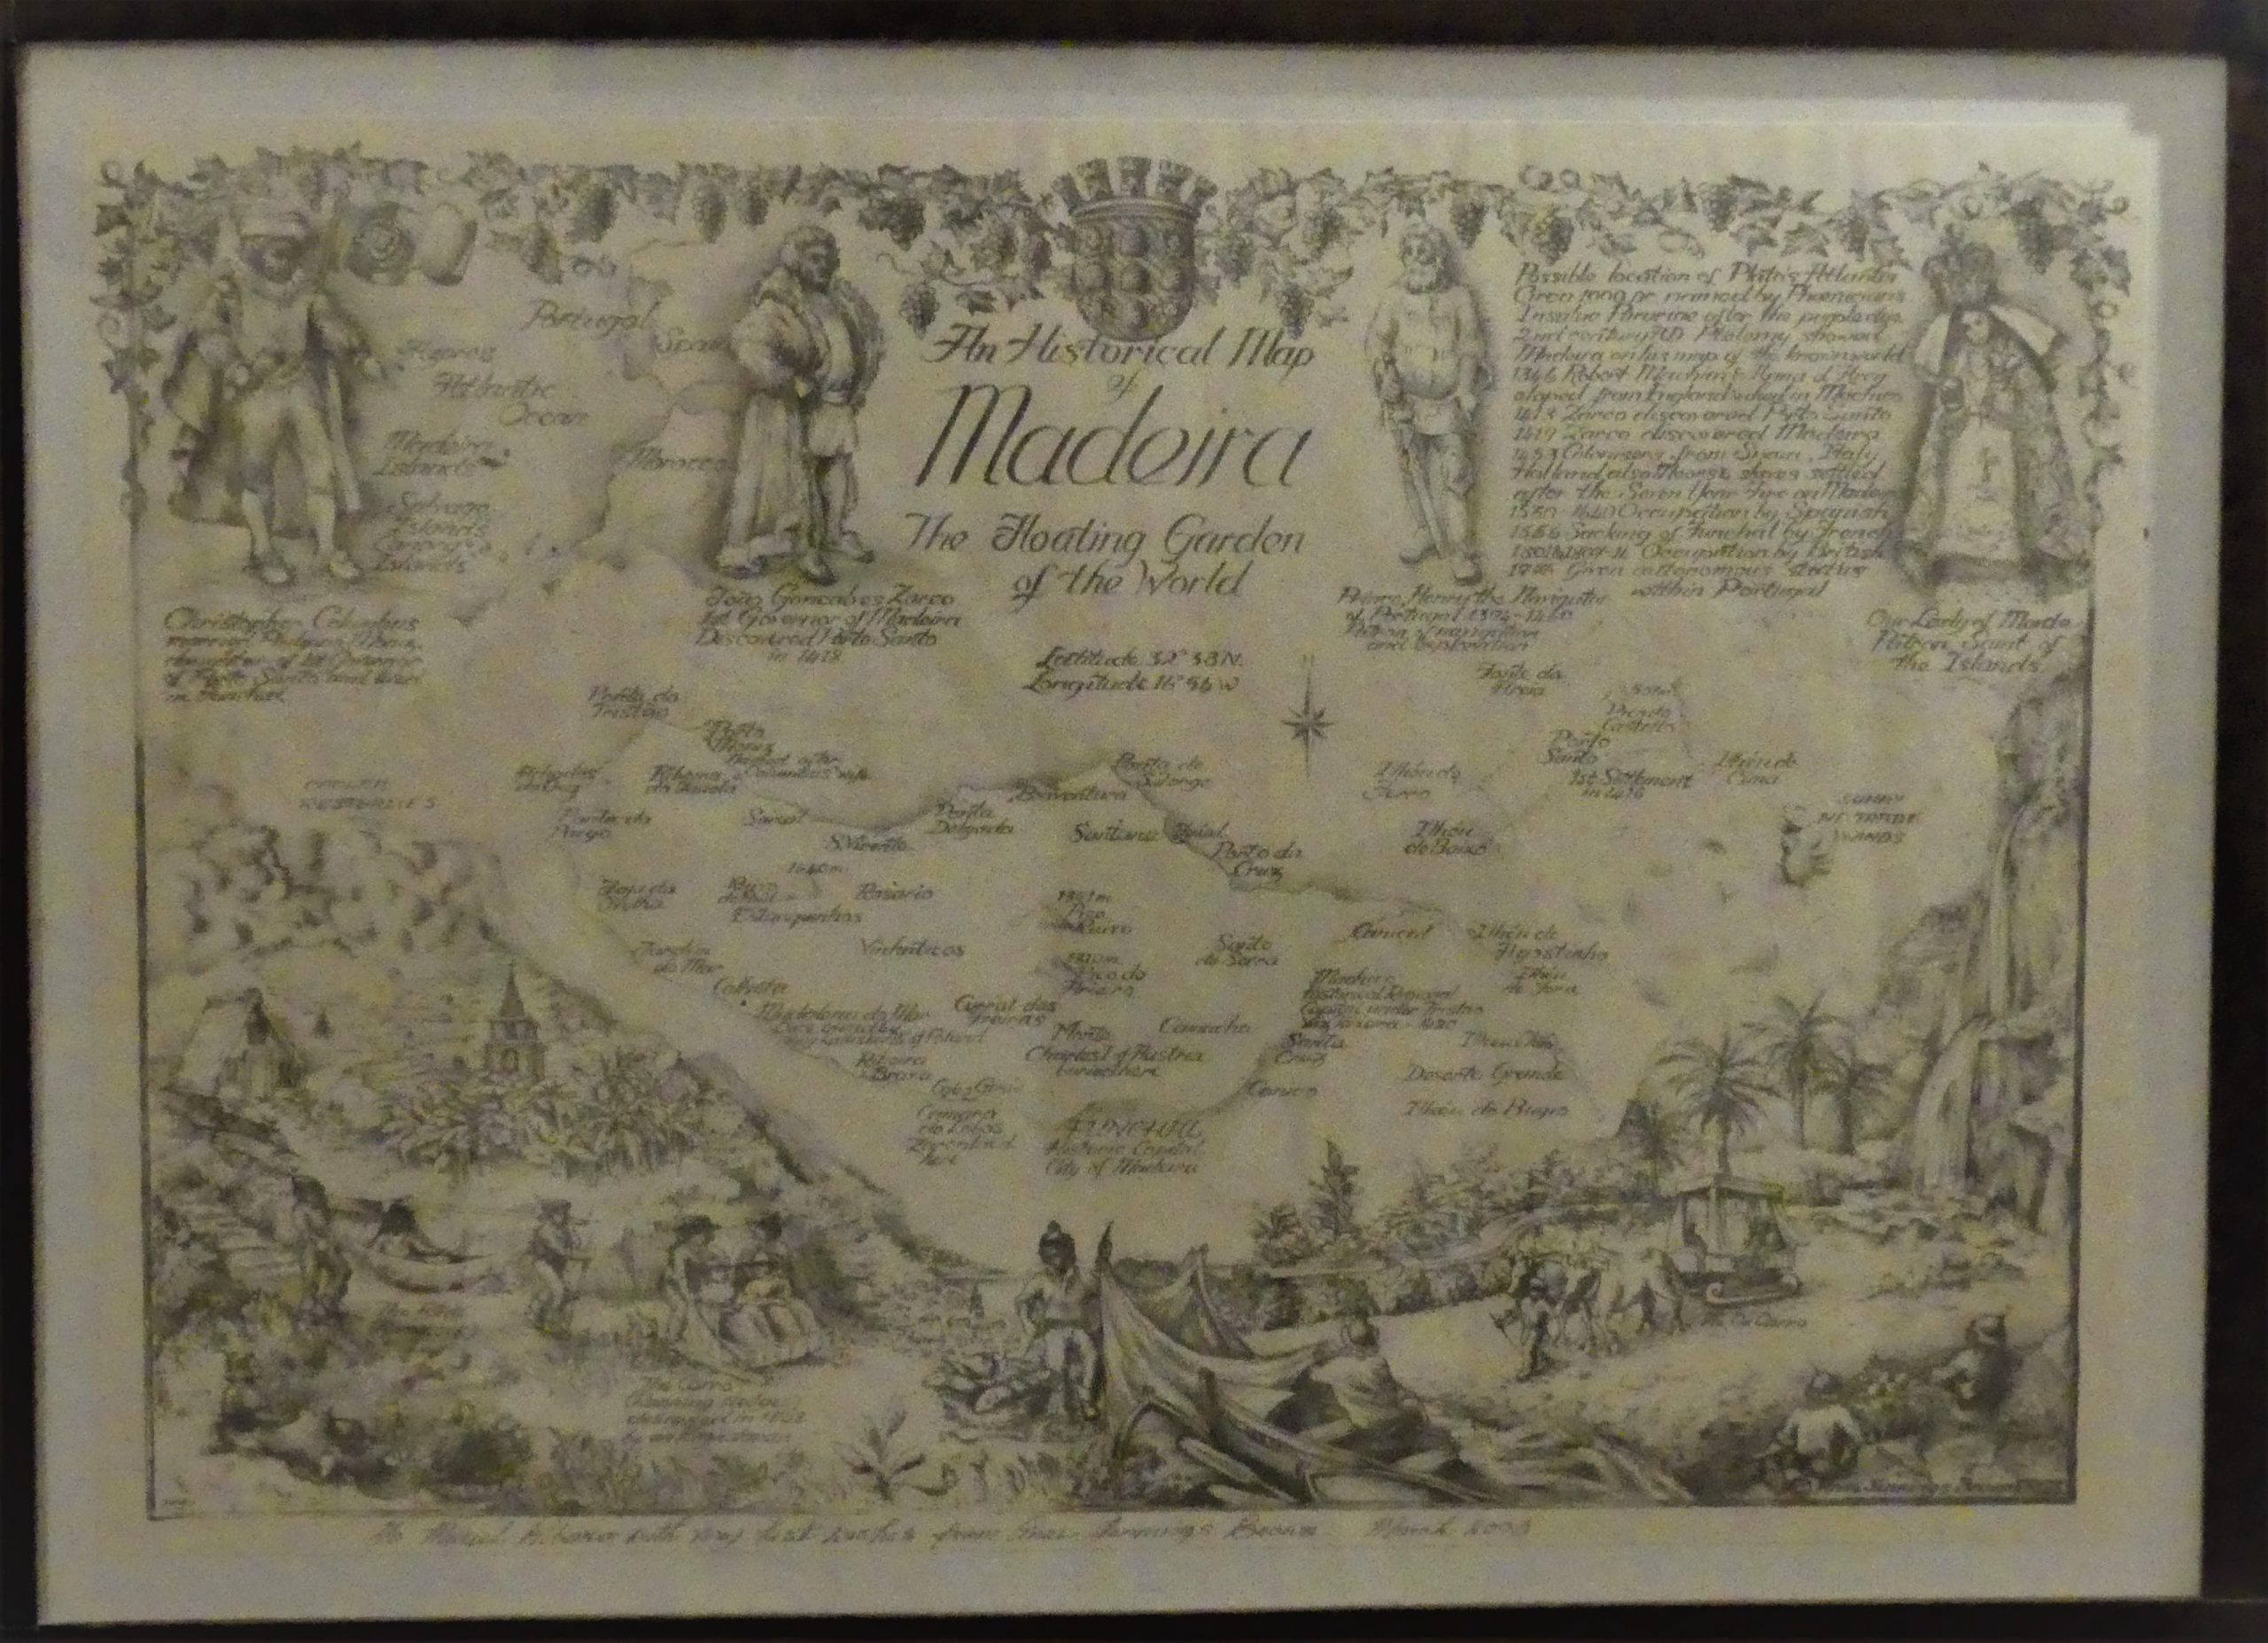 An old Map of Madeira the floating garden (Ritz cafe)